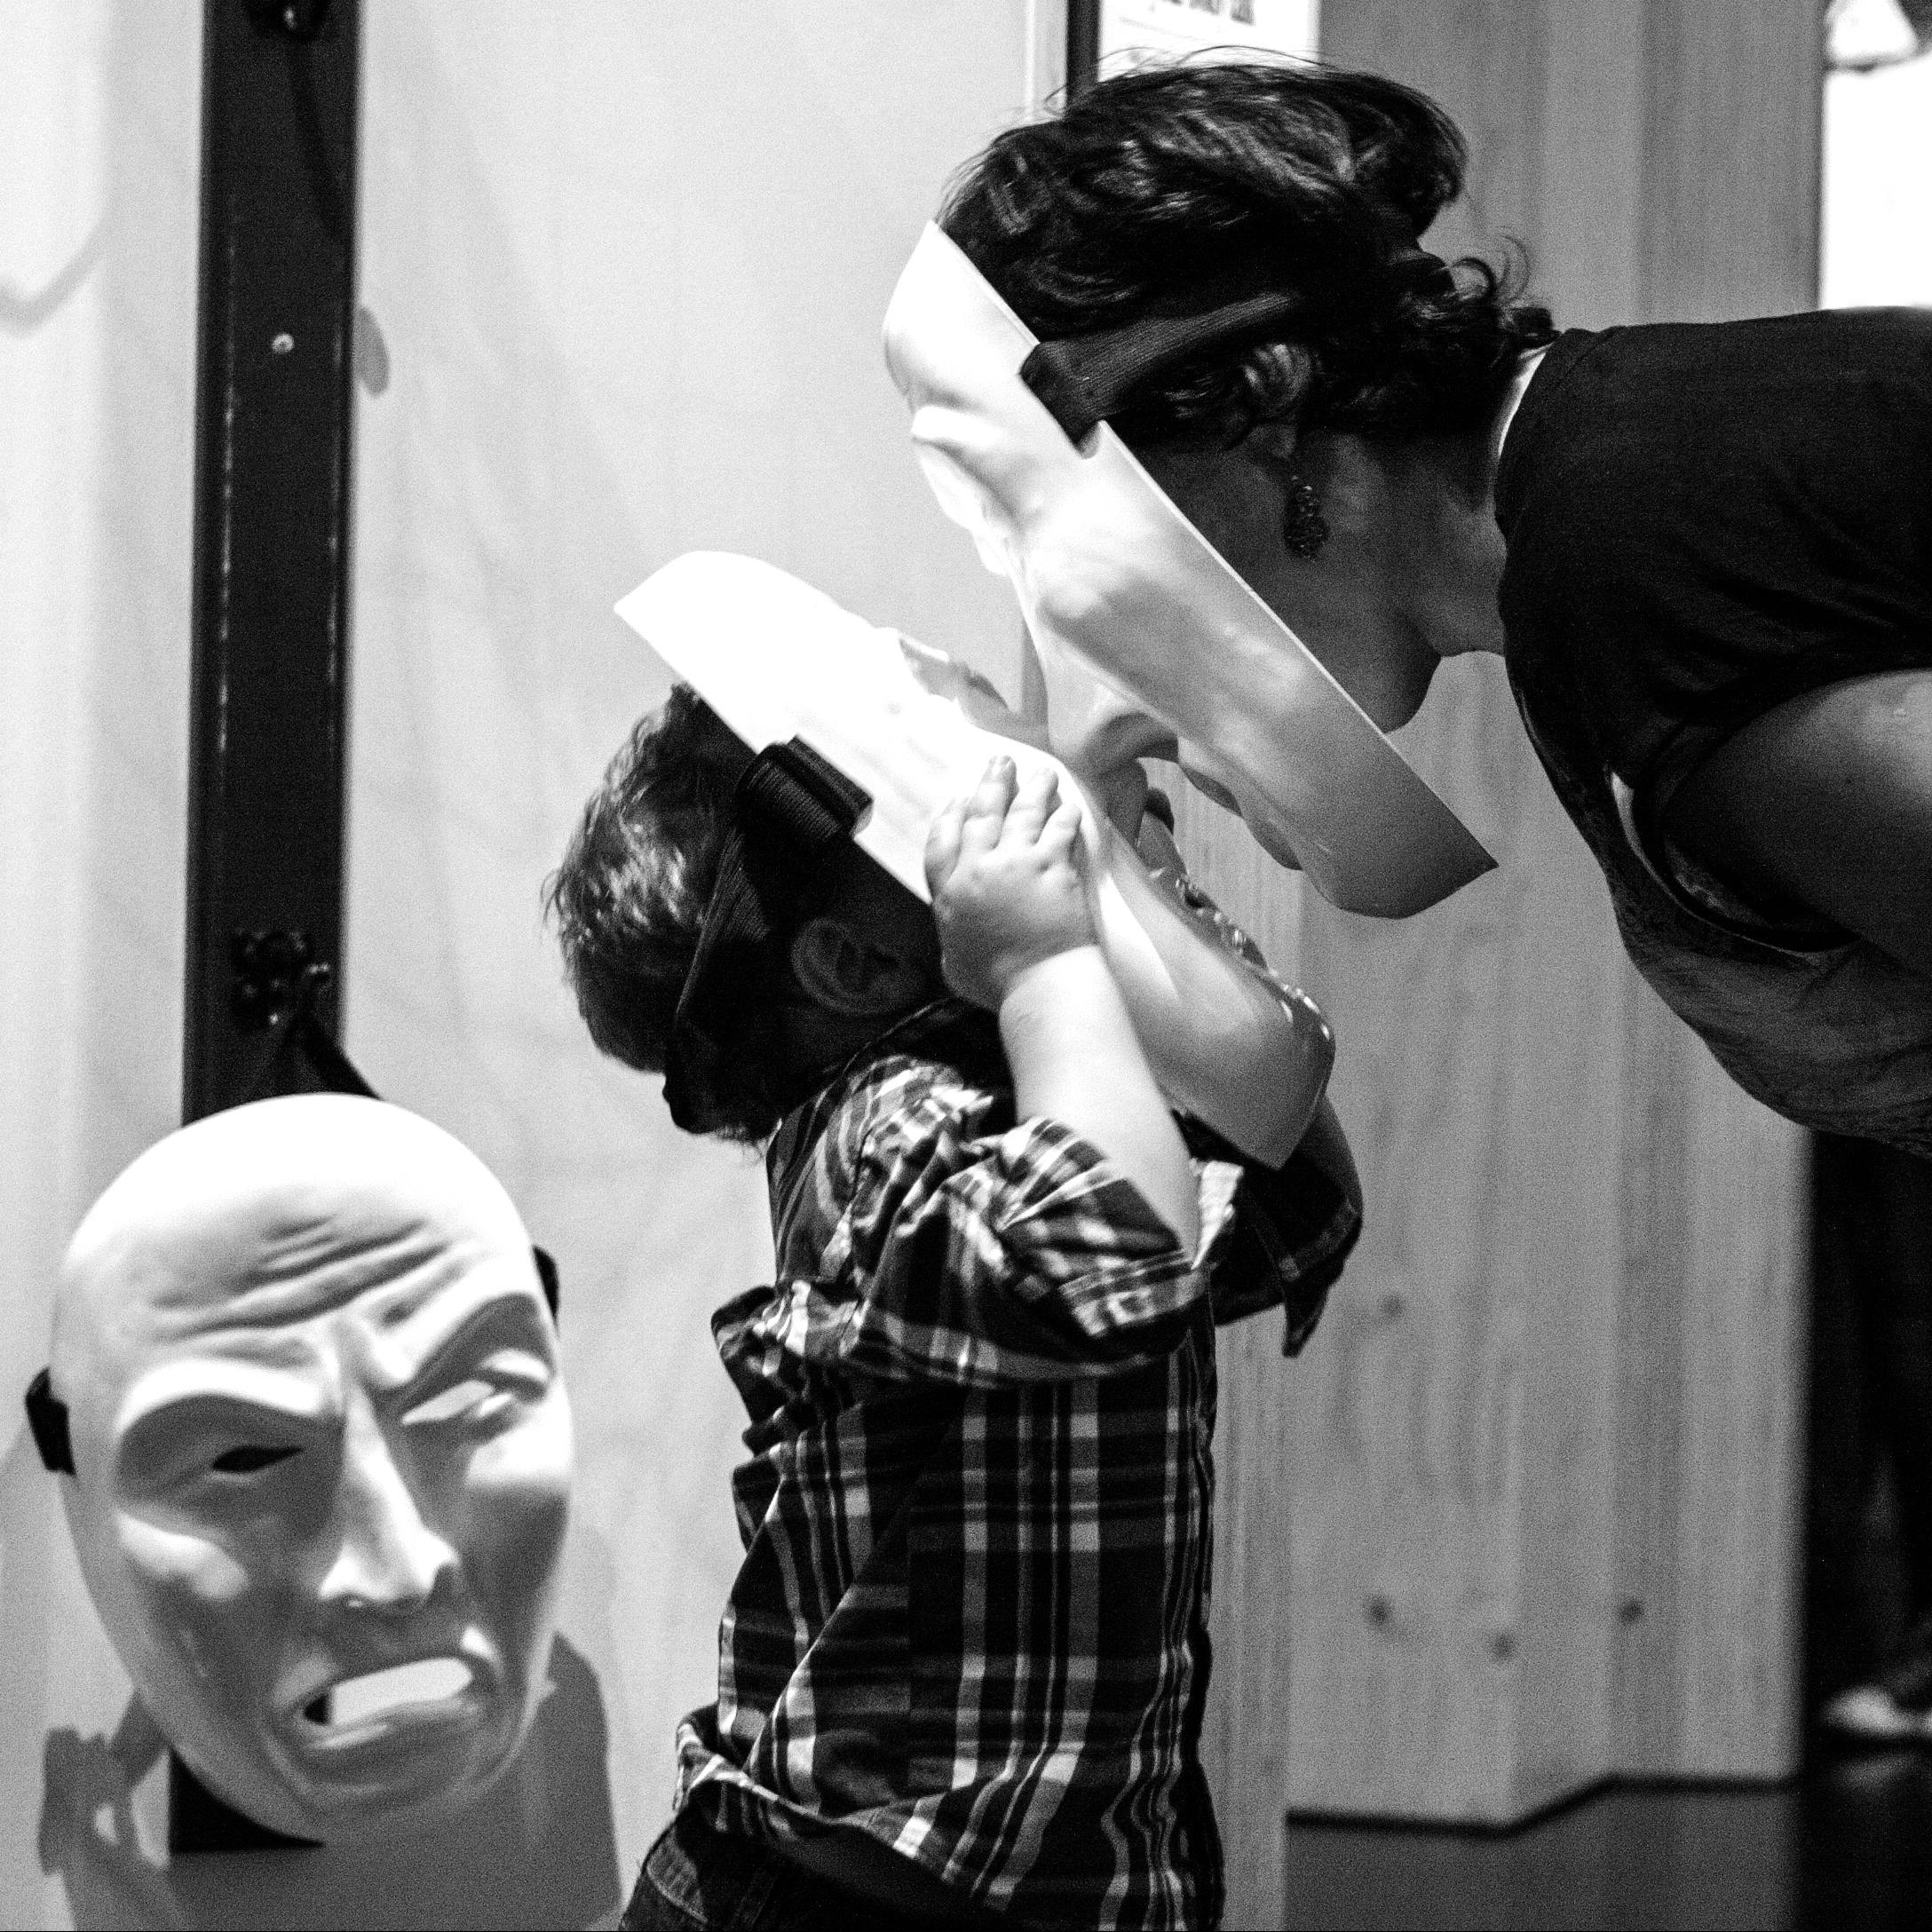 a child and an adult at the mental health exhibit wearing masks